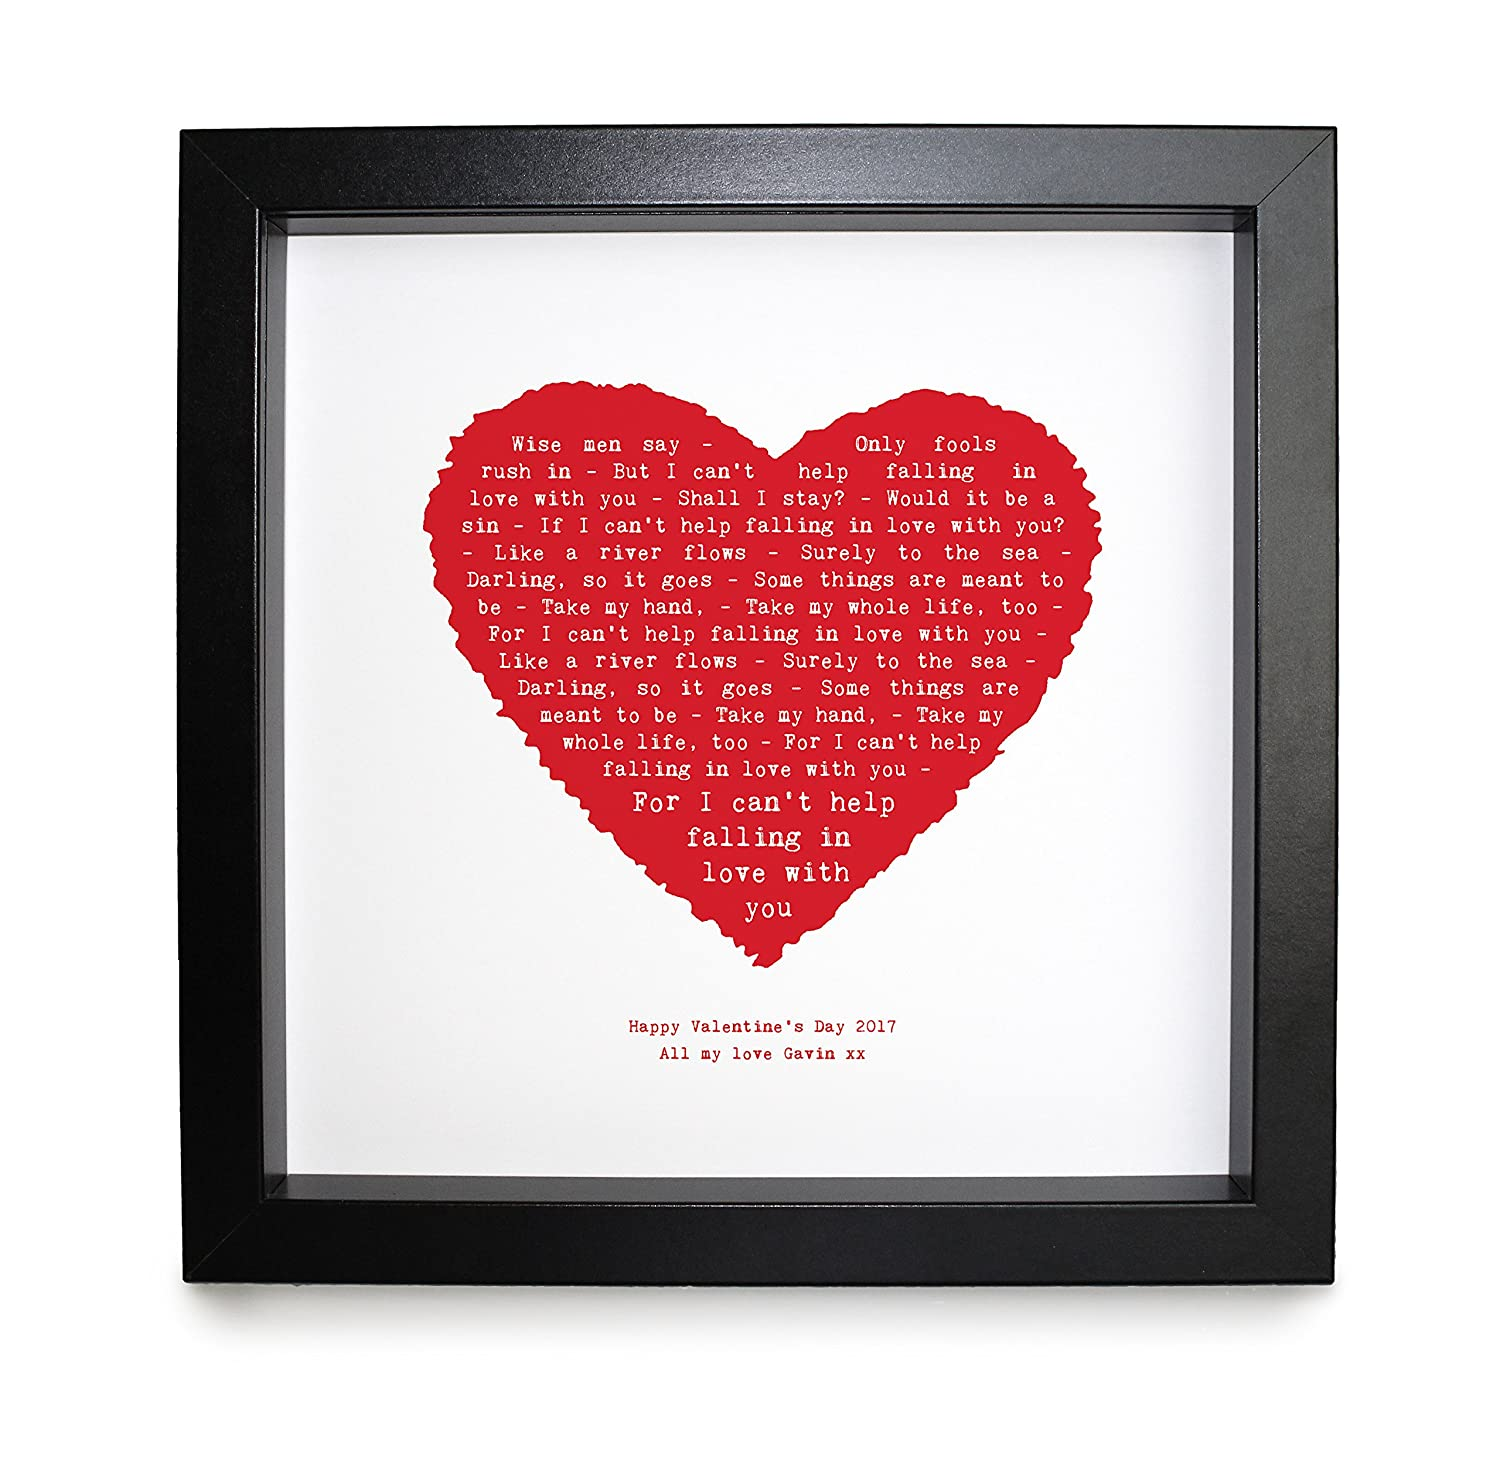 Elvis Presley - I can't help falling in love, HEART SHAPED DESIGNER PERSONALISED PRINT Framed